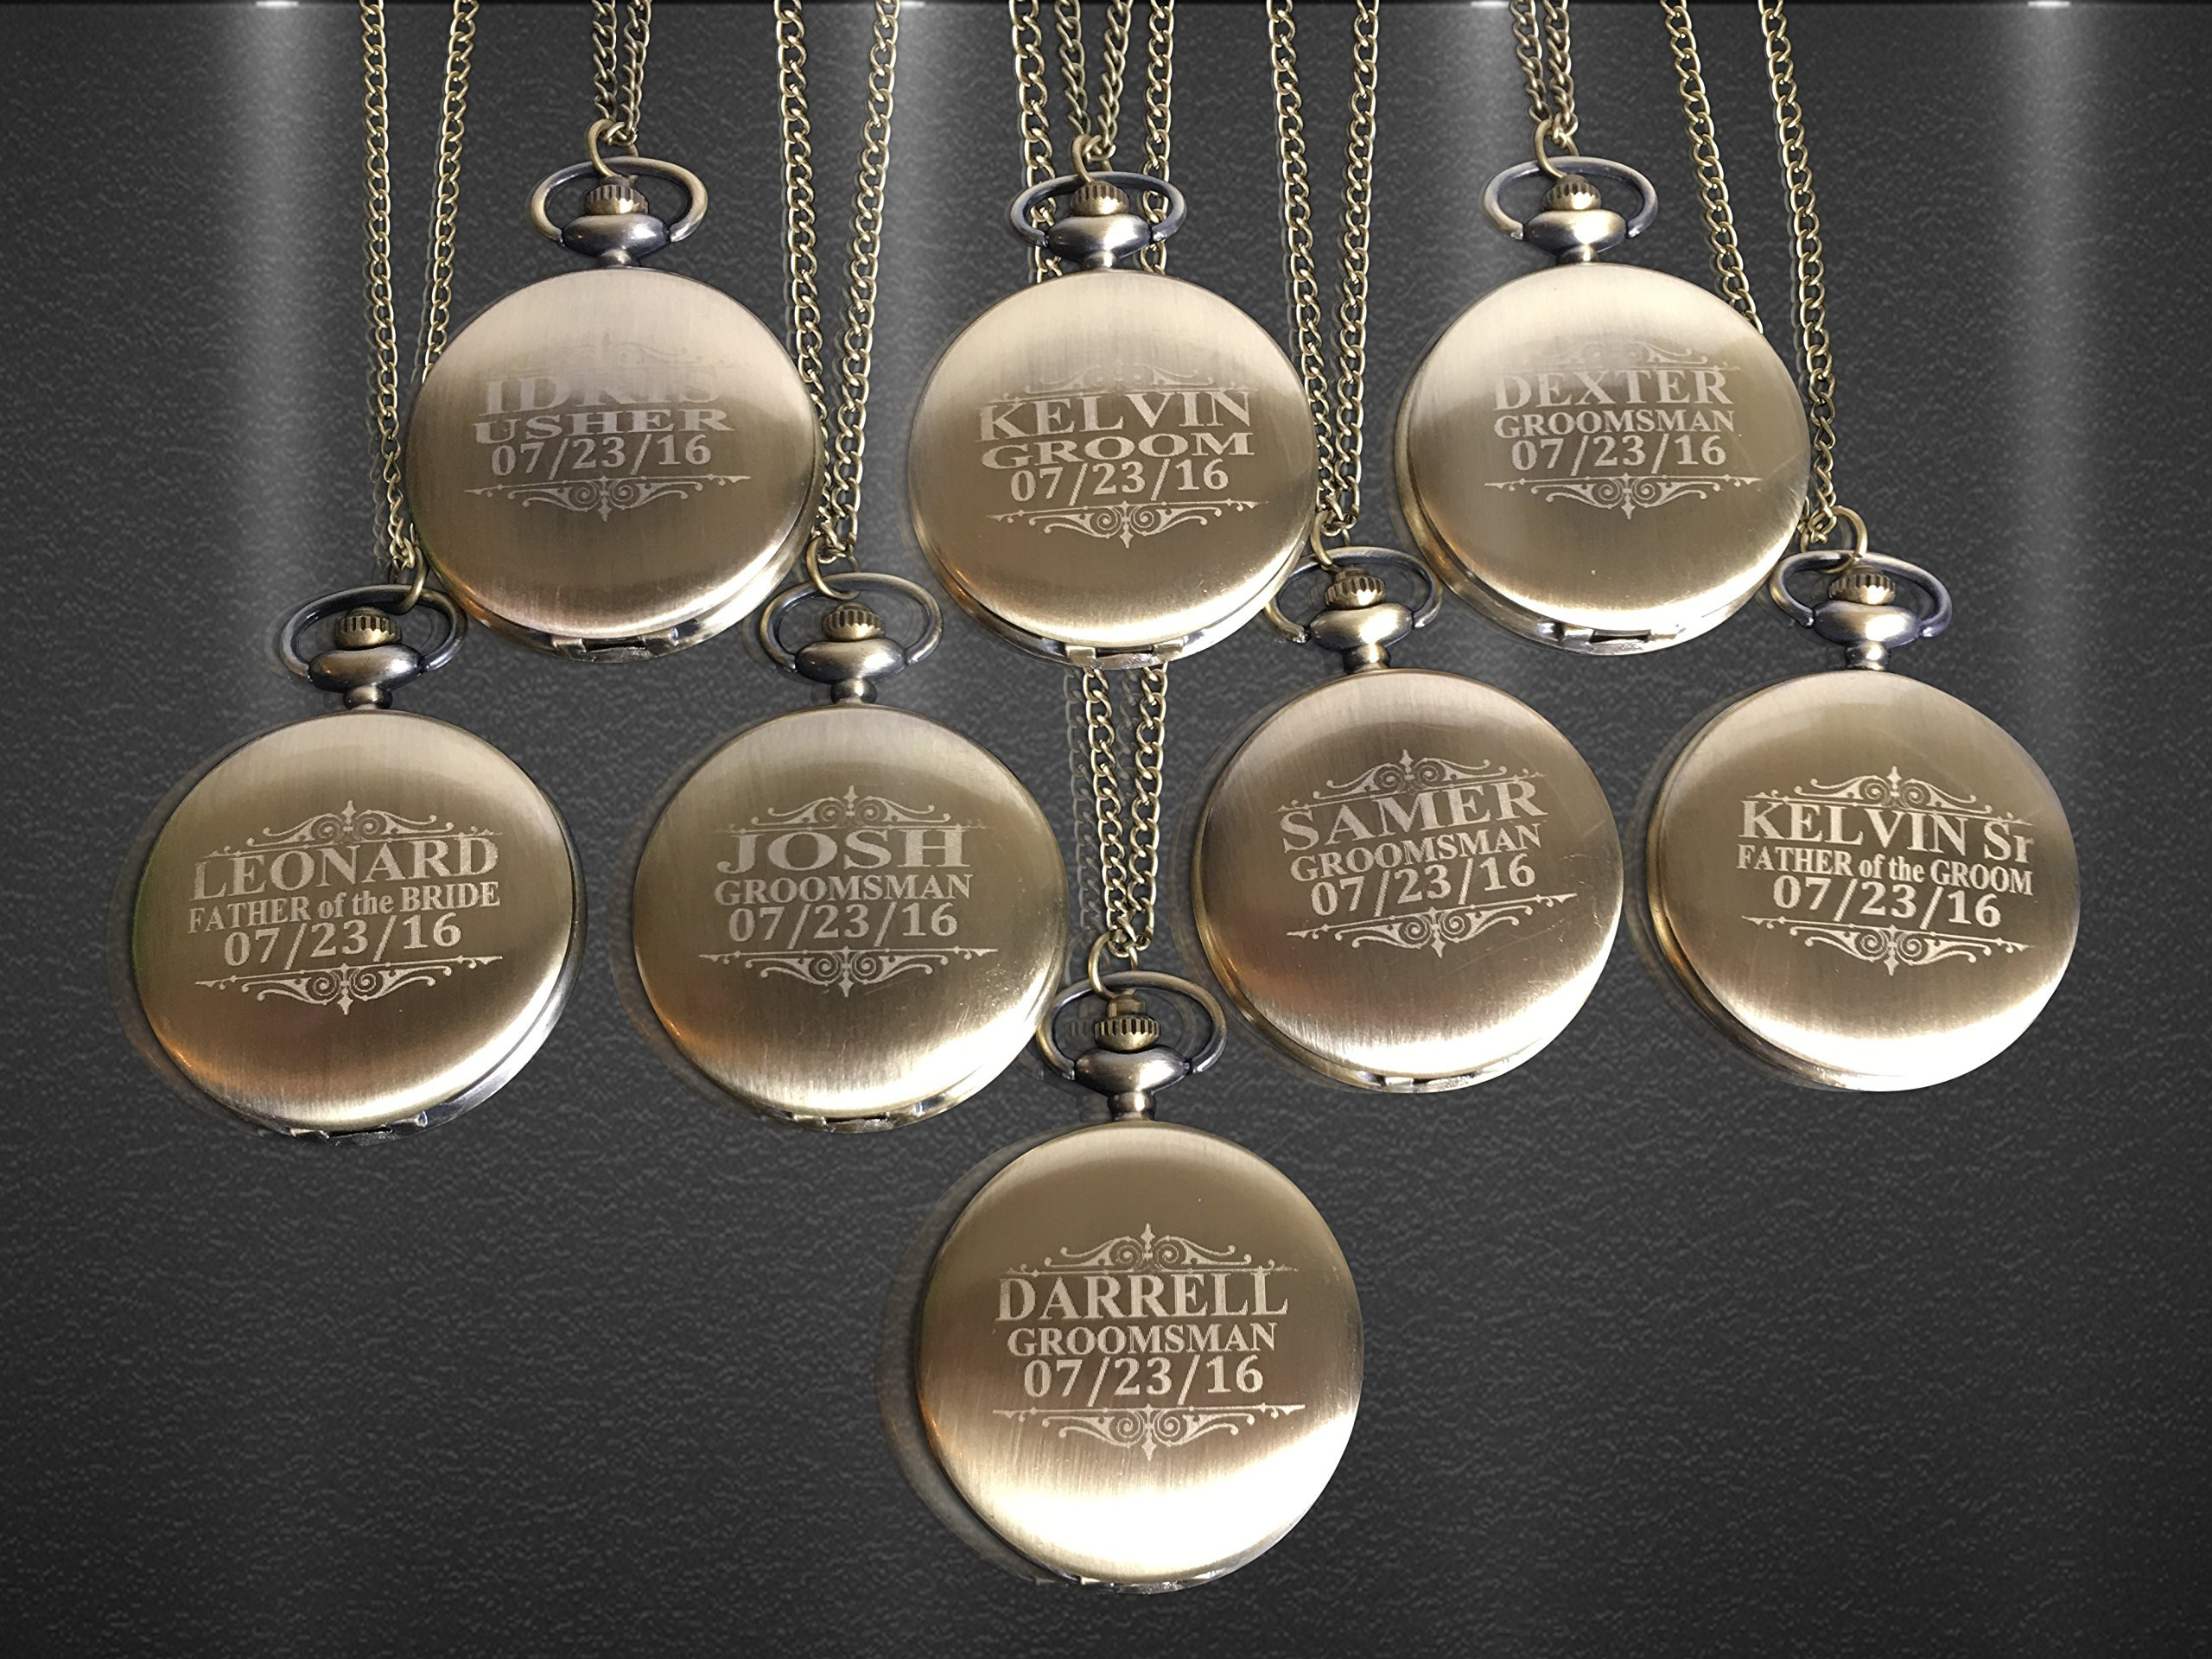 Vintage Pocket watch set of 8, Custom engraved Groomsmen pocket watches. Boxes included, chain and engraving is included.